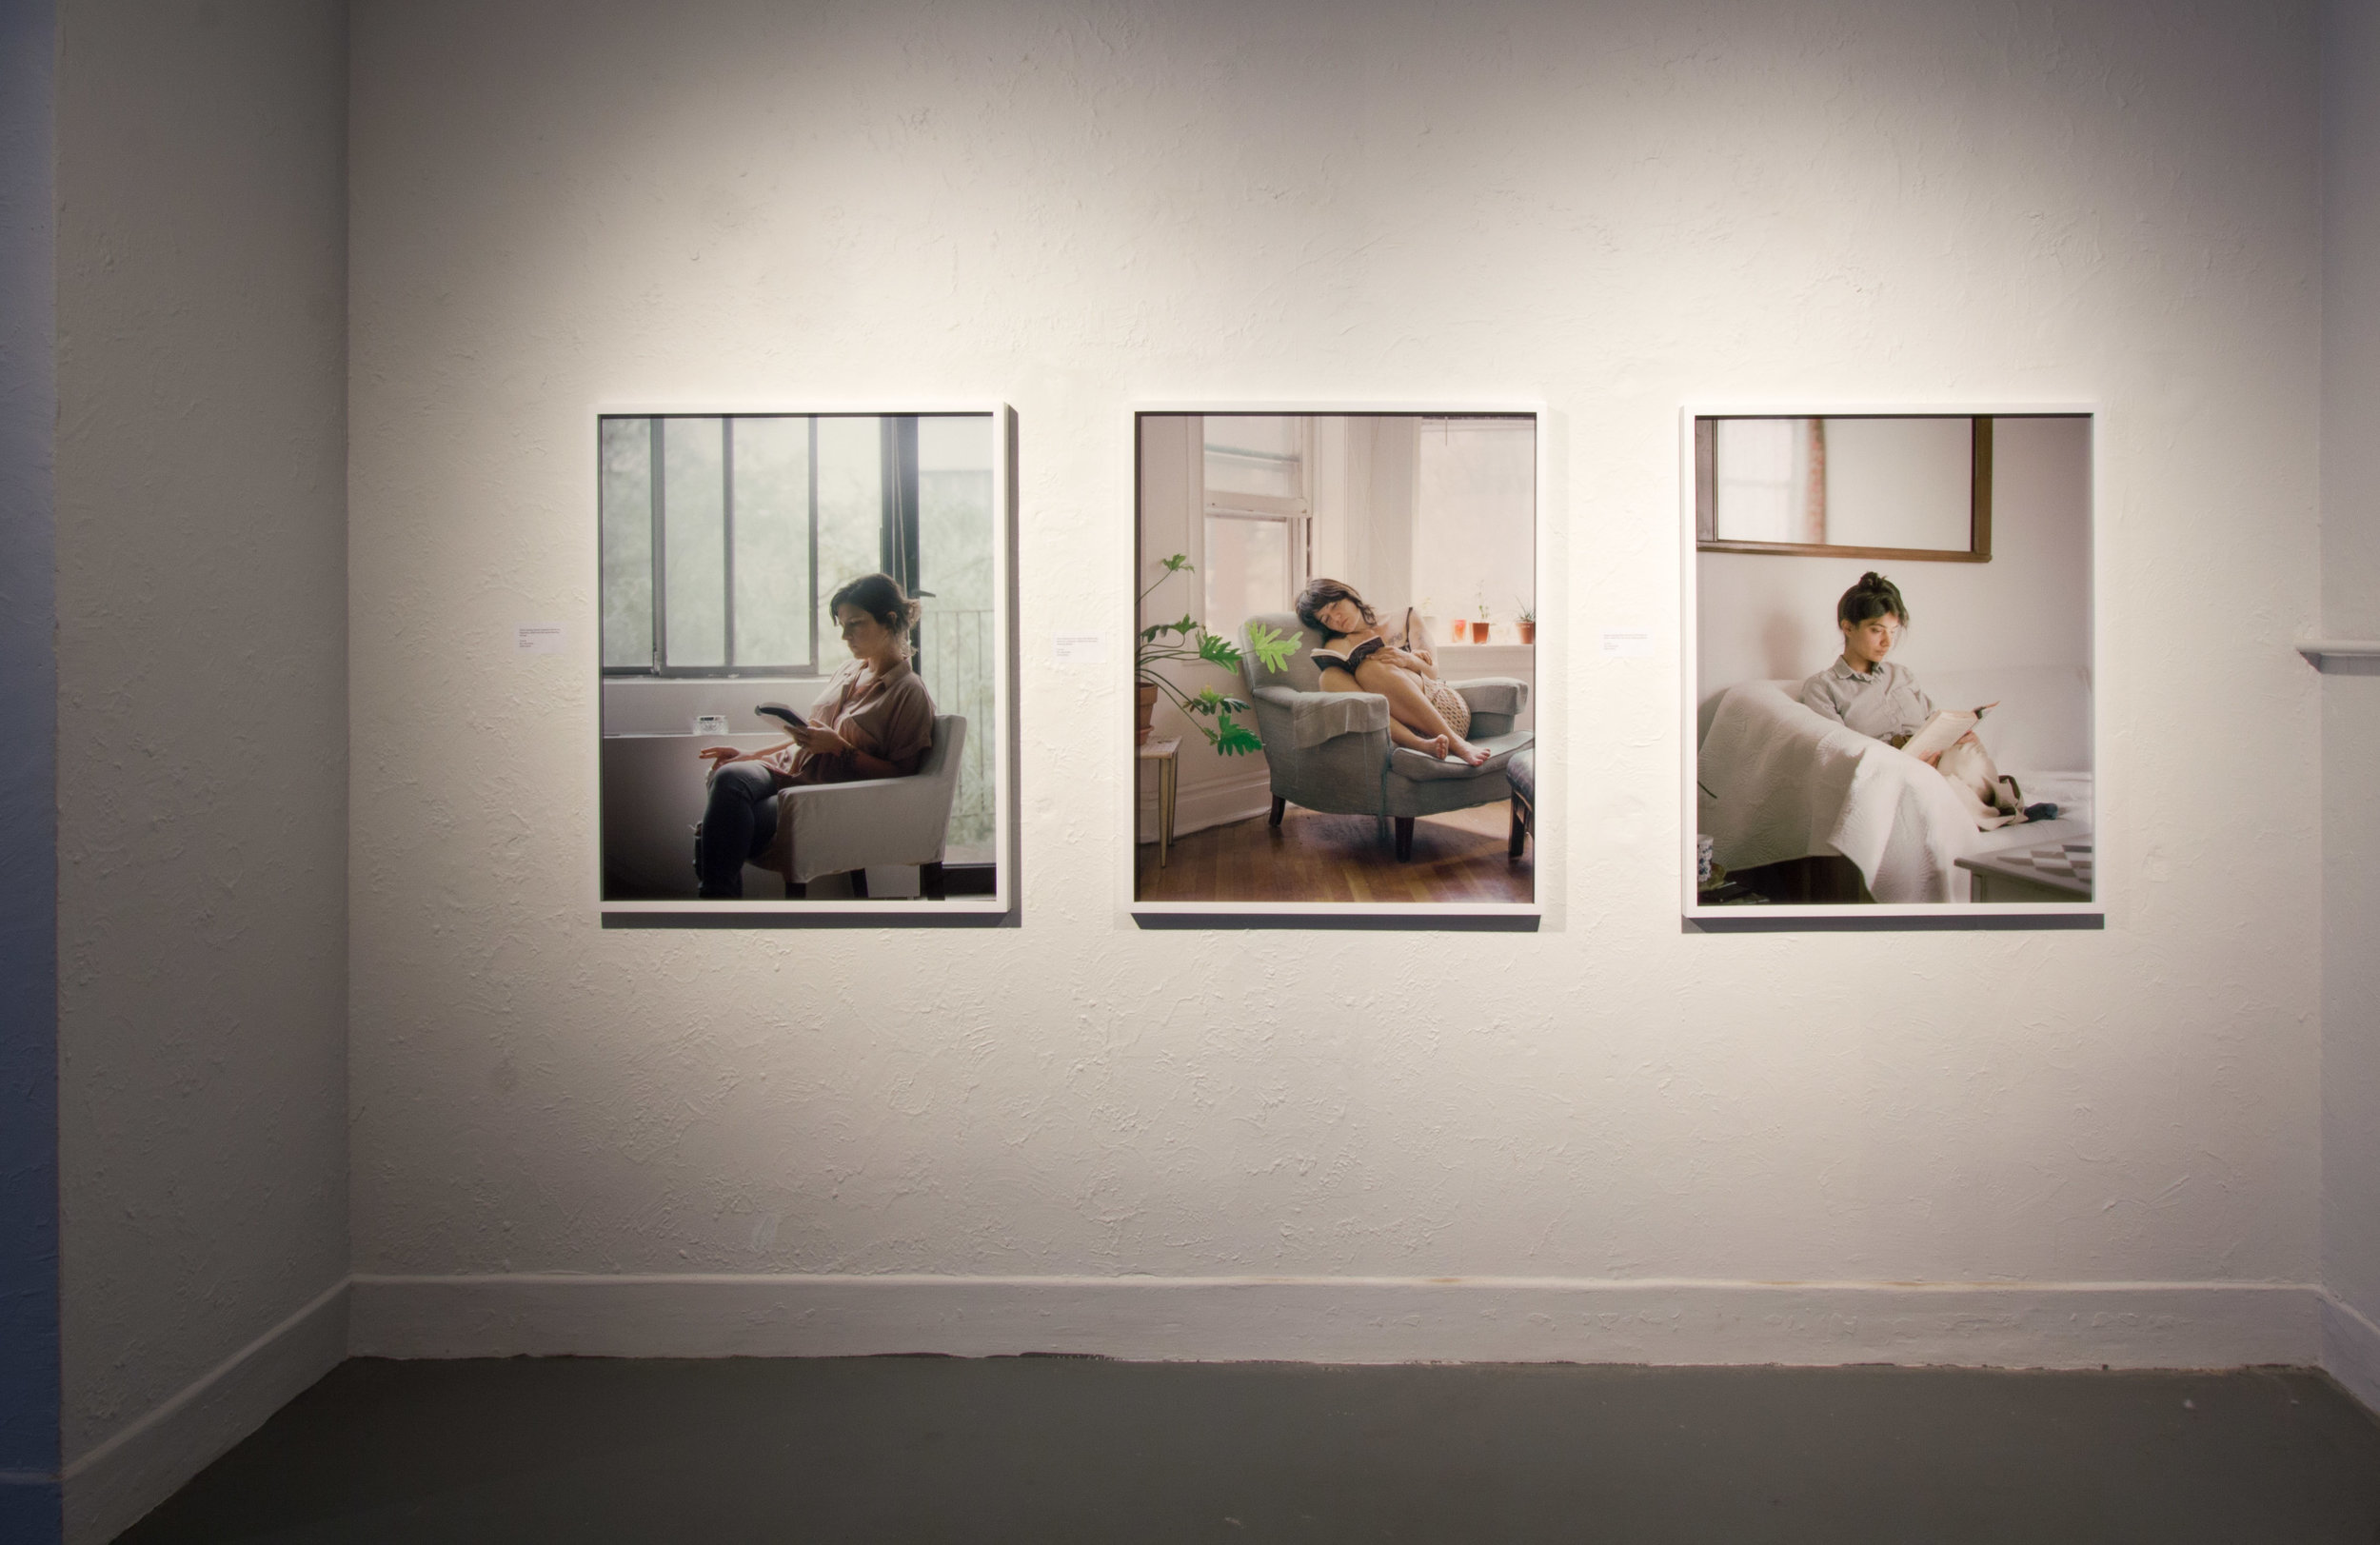 Carrie Schneider, from the series Reading Women (2012-2014)